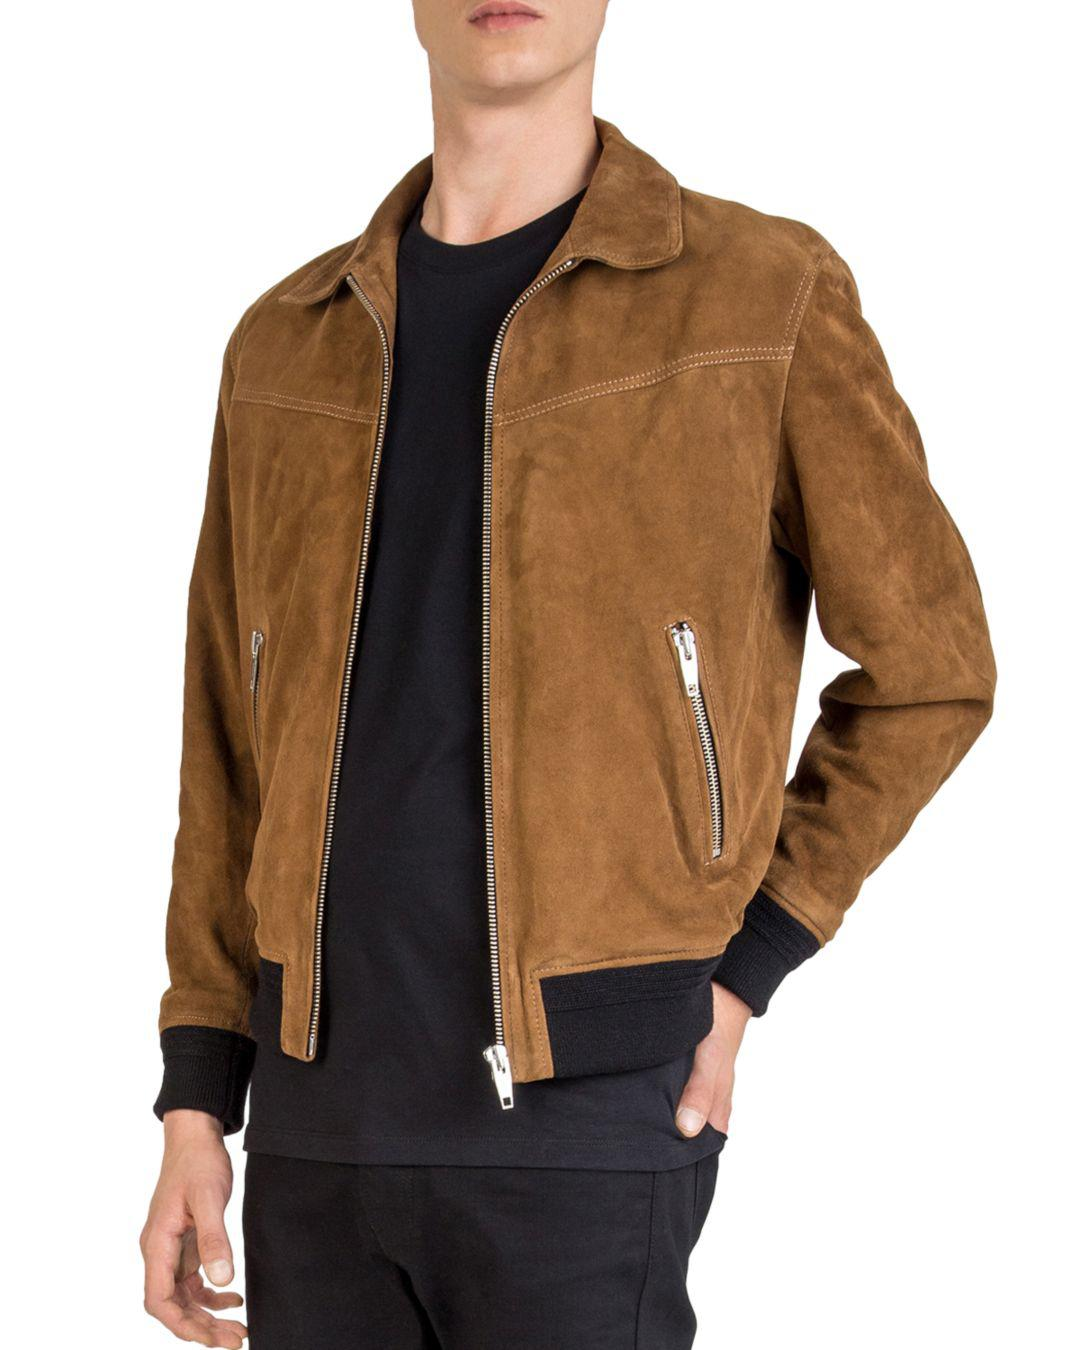 Lyst The Kooples Suede Leather Jacket In Brown For Men